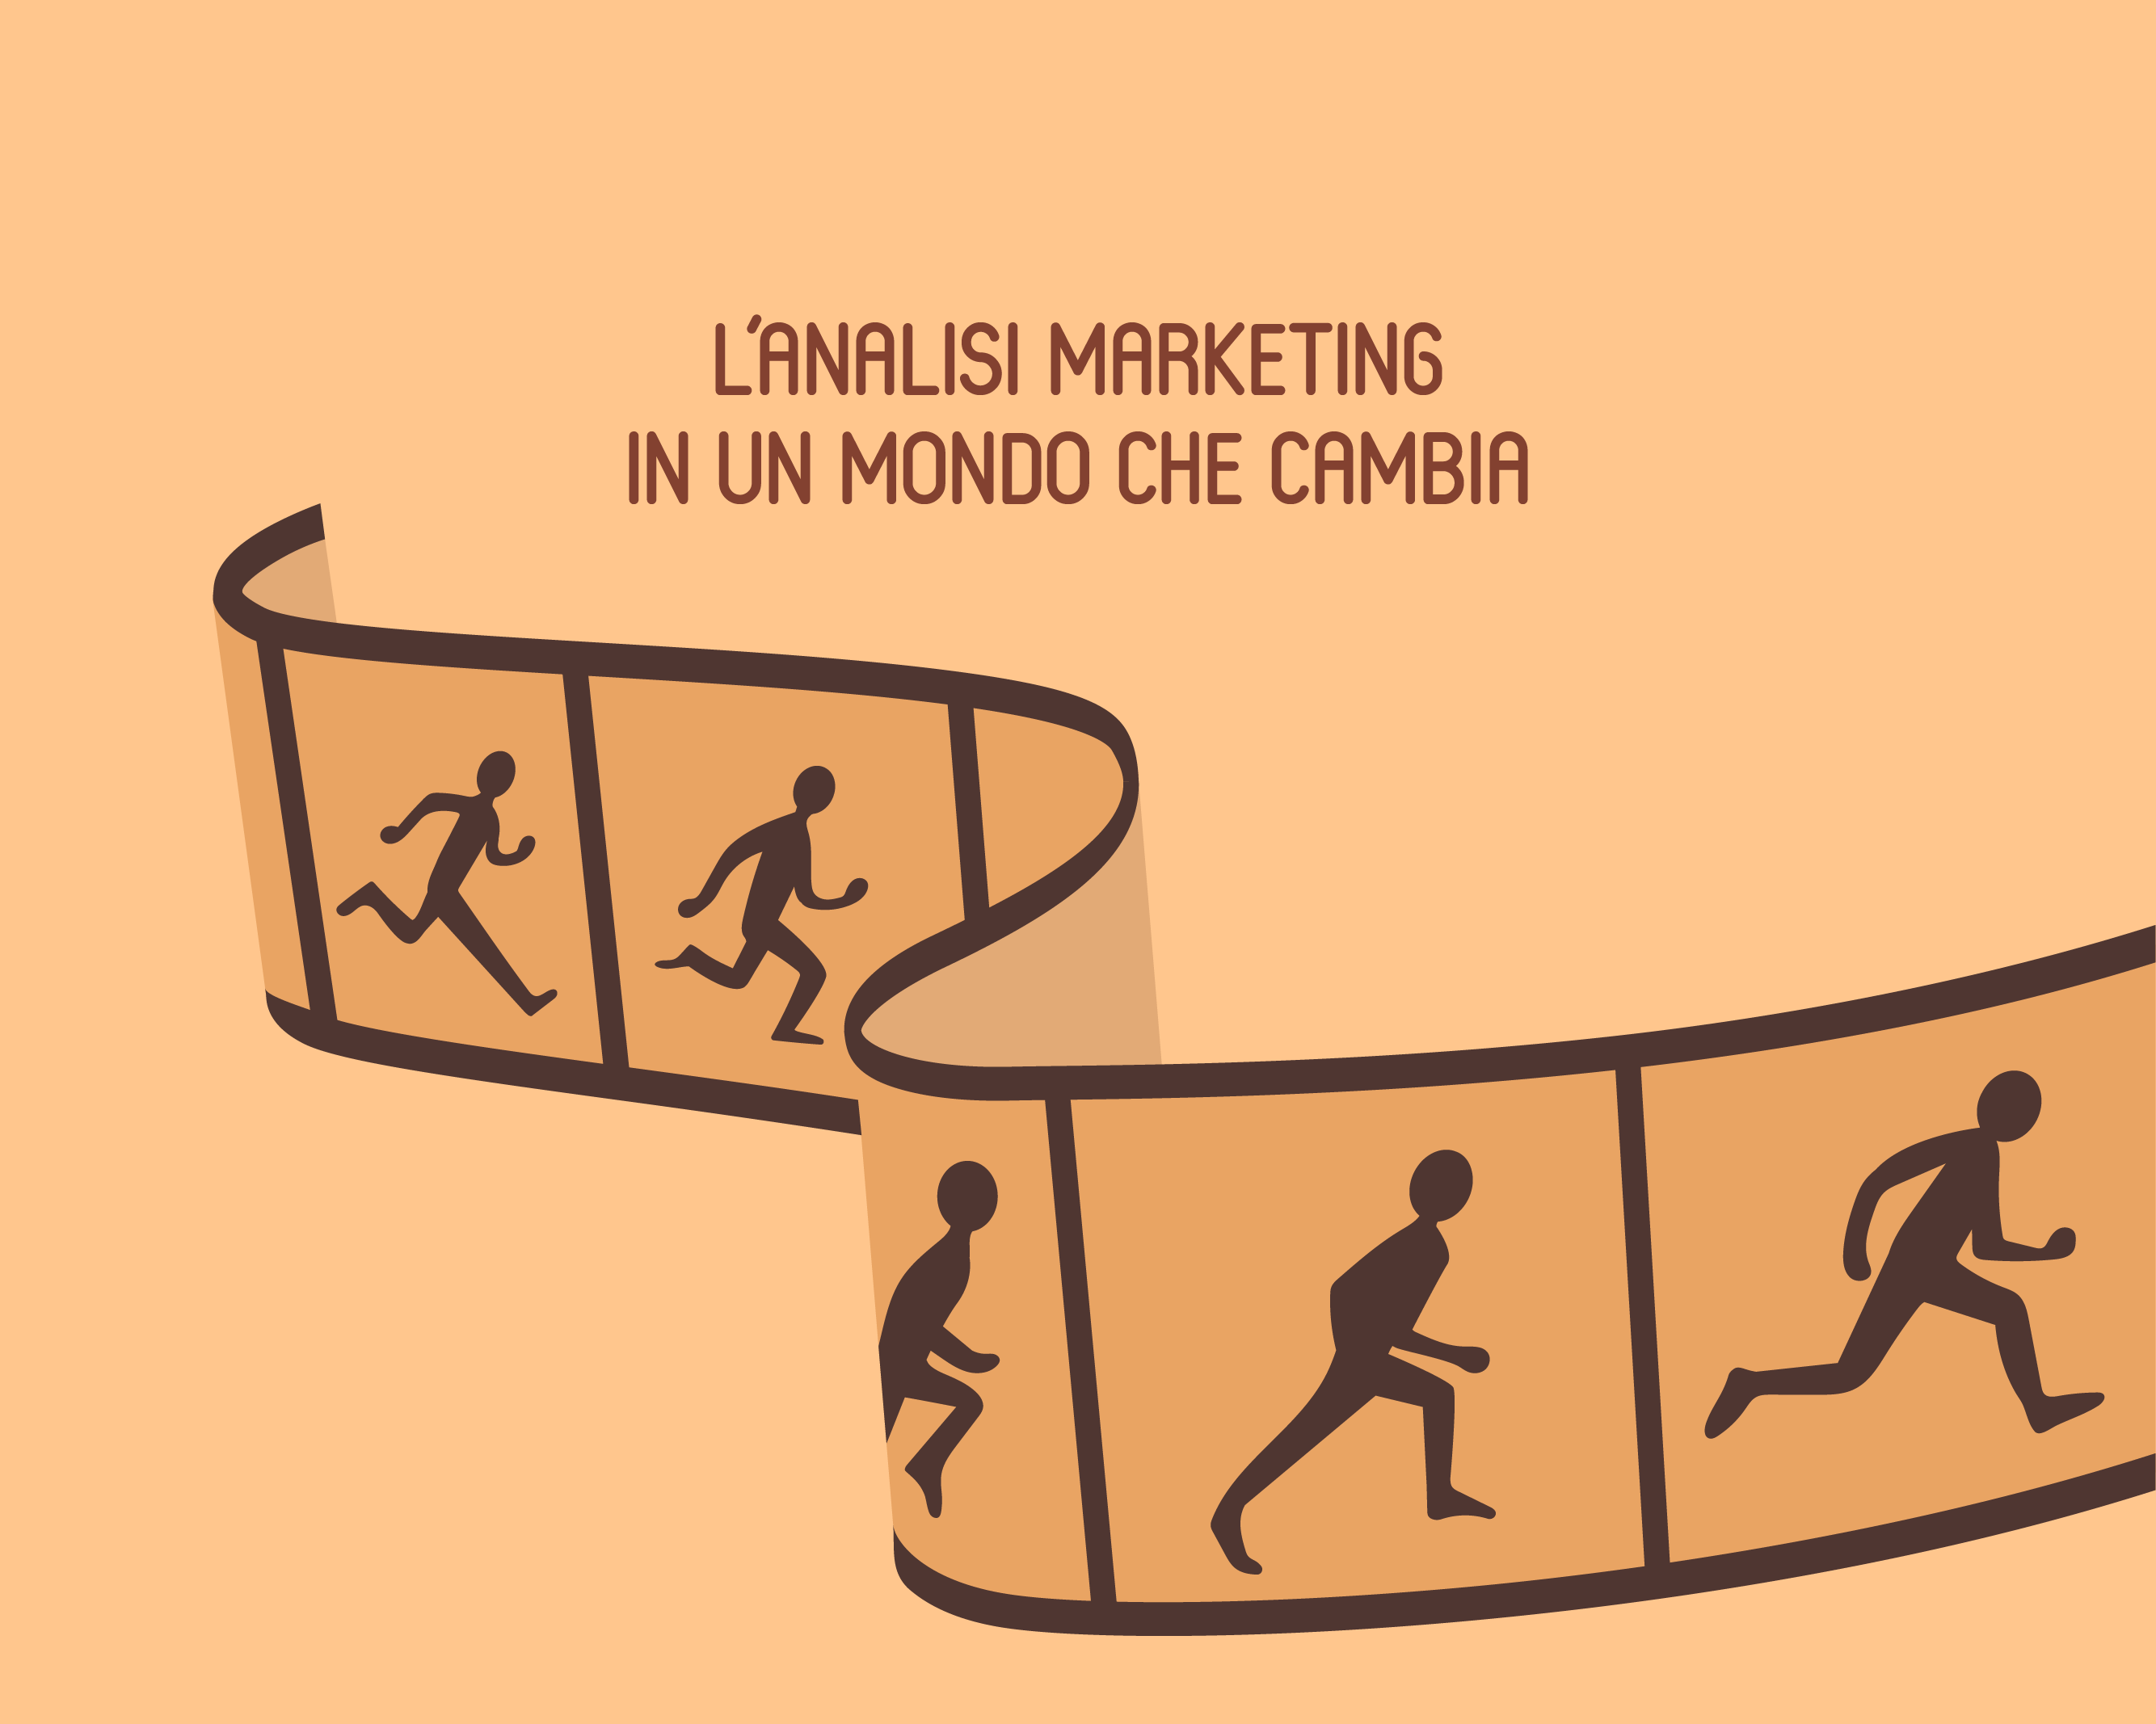 L'analisi marketing in un mondo che cambia